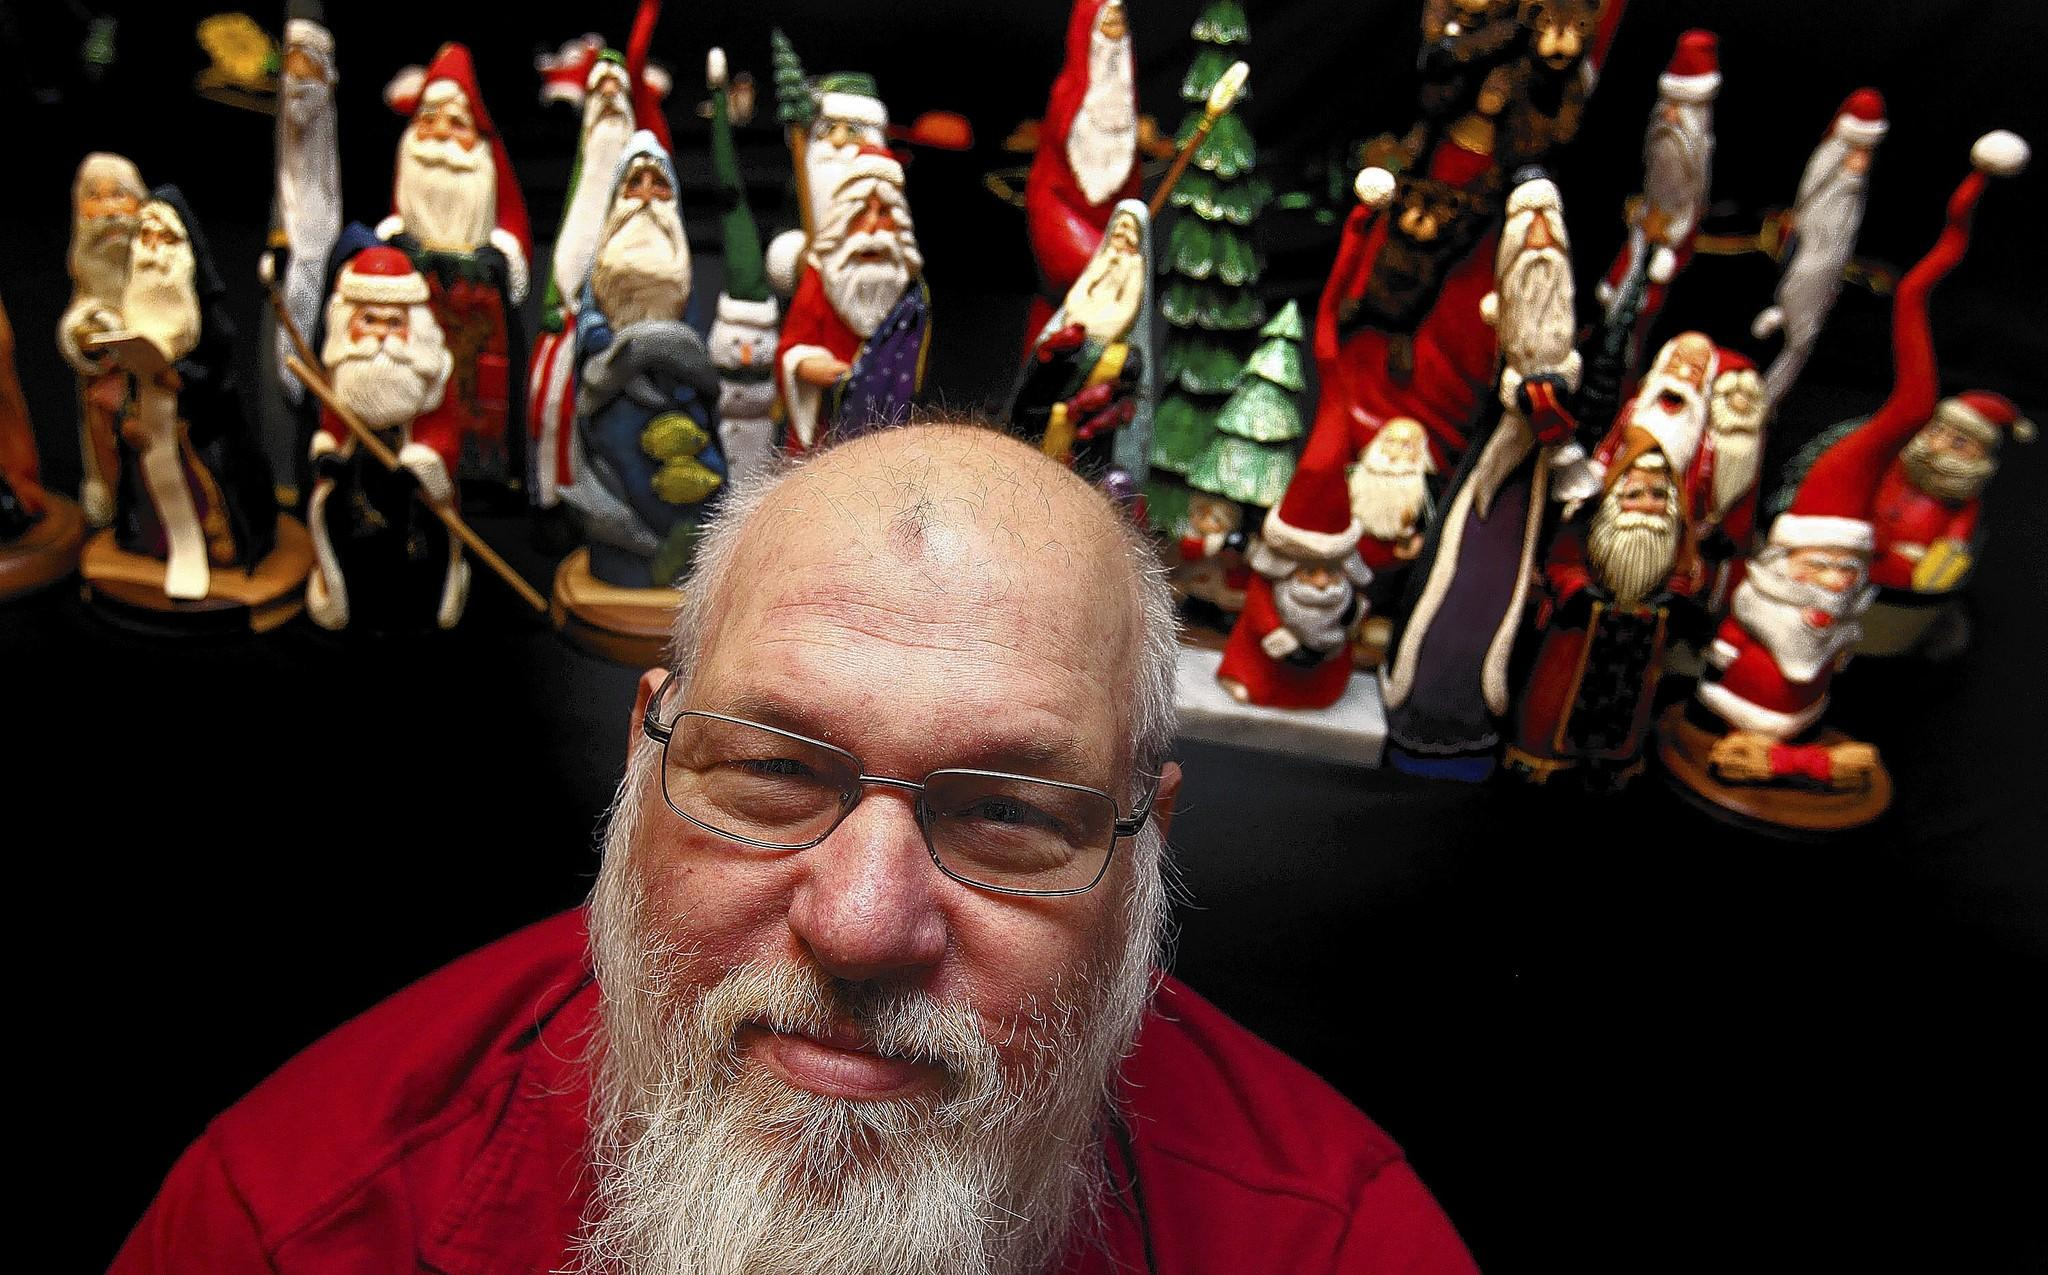 Butch Kuchta of Hampton likes to carve things big and small out of wood. One of the many subjects he like to carve is Santa Claus. Using inspiration from the people and things around him he carves these whimsical figures by hand.